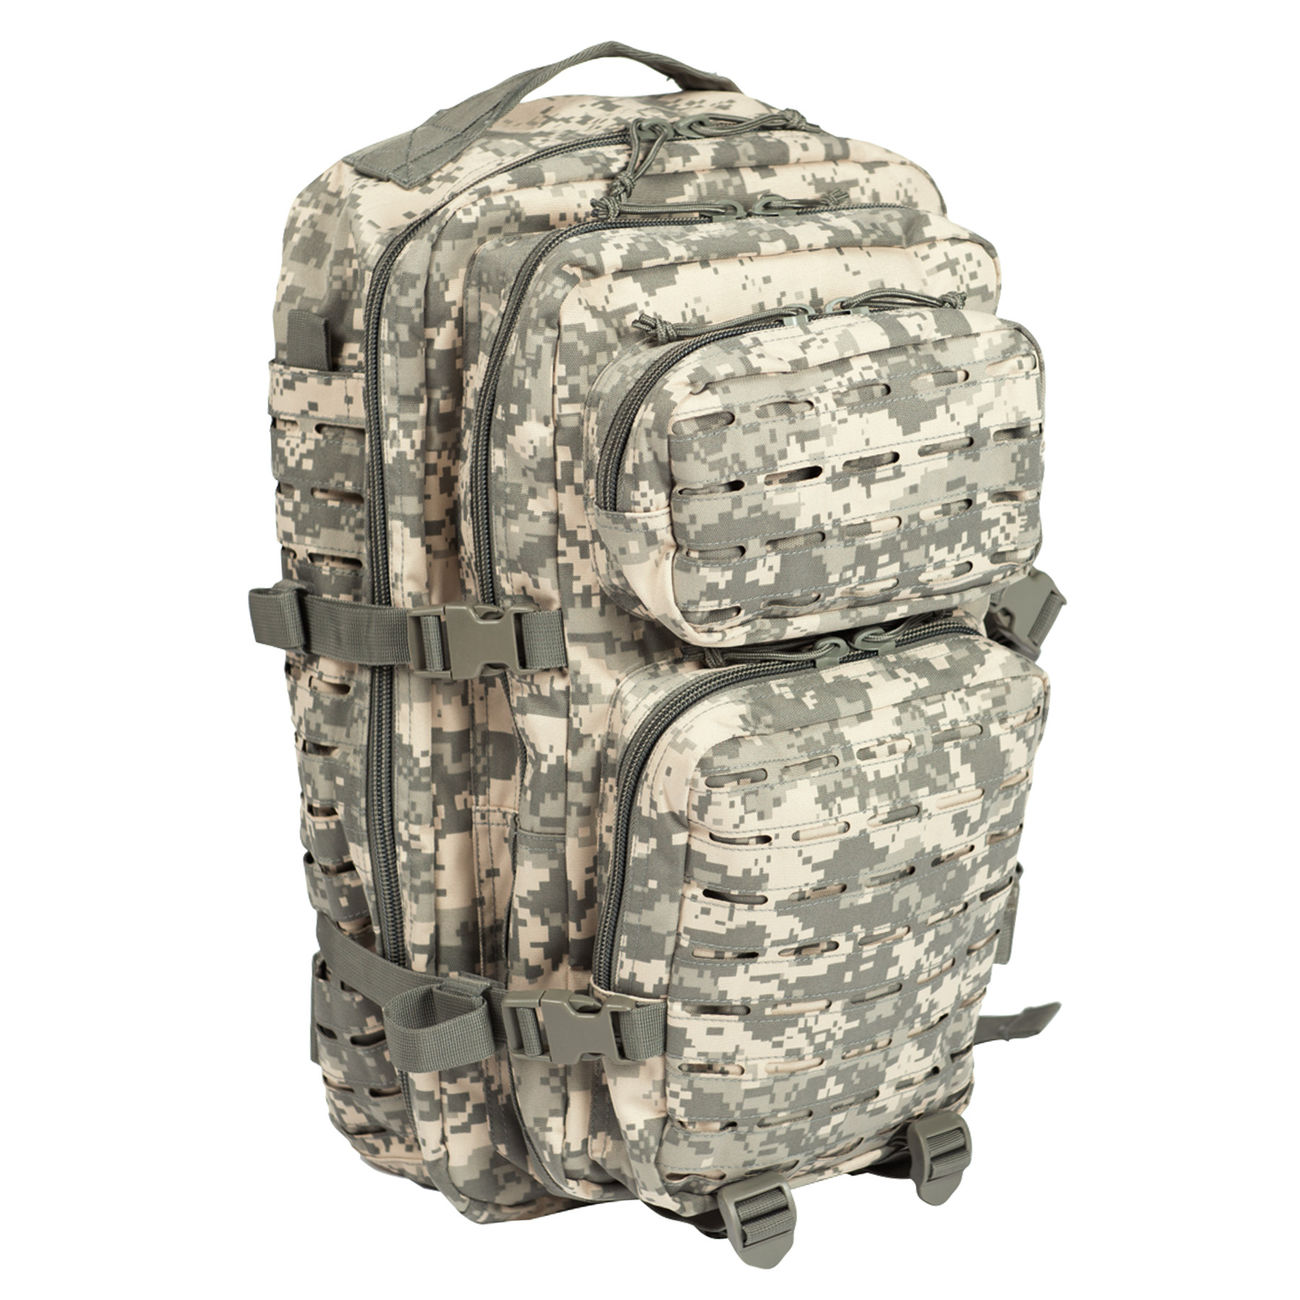 Mil-Tec Rucksack US Assault Pack Laser Cut large 36L AT-digital 0